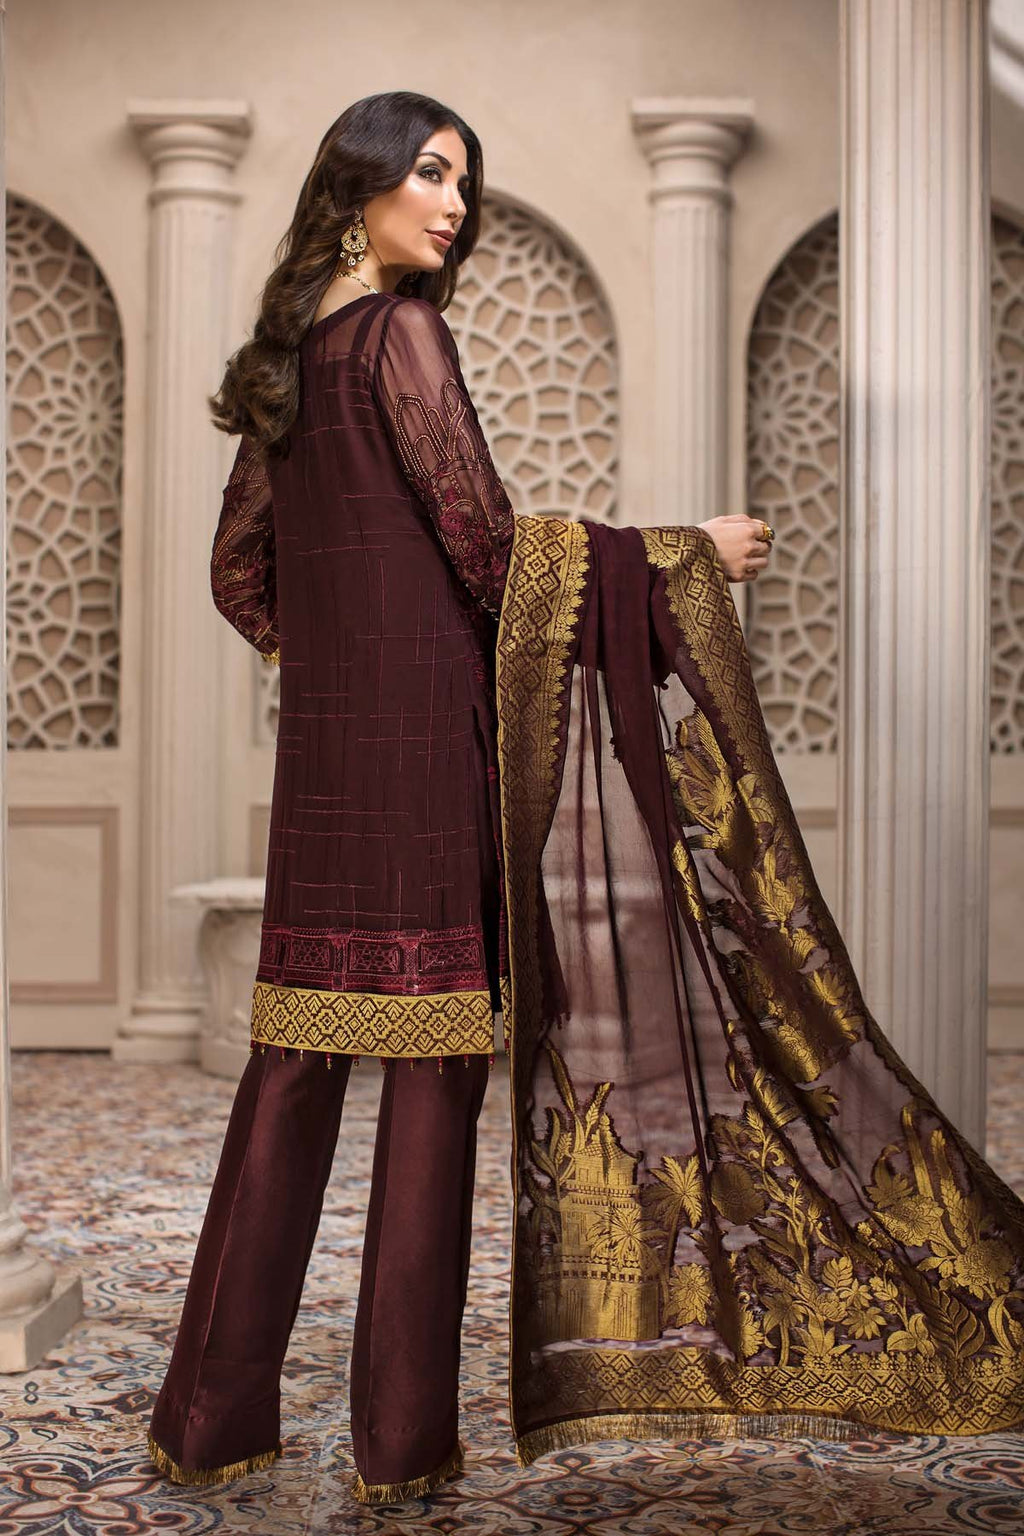 Jazmin SHAHNAMEH Eid Collection 2019 suit Royelle - Burgundy Embroidered Chiffon Kameez, Jamawar Chiffon Dupatta and Silk Trouser